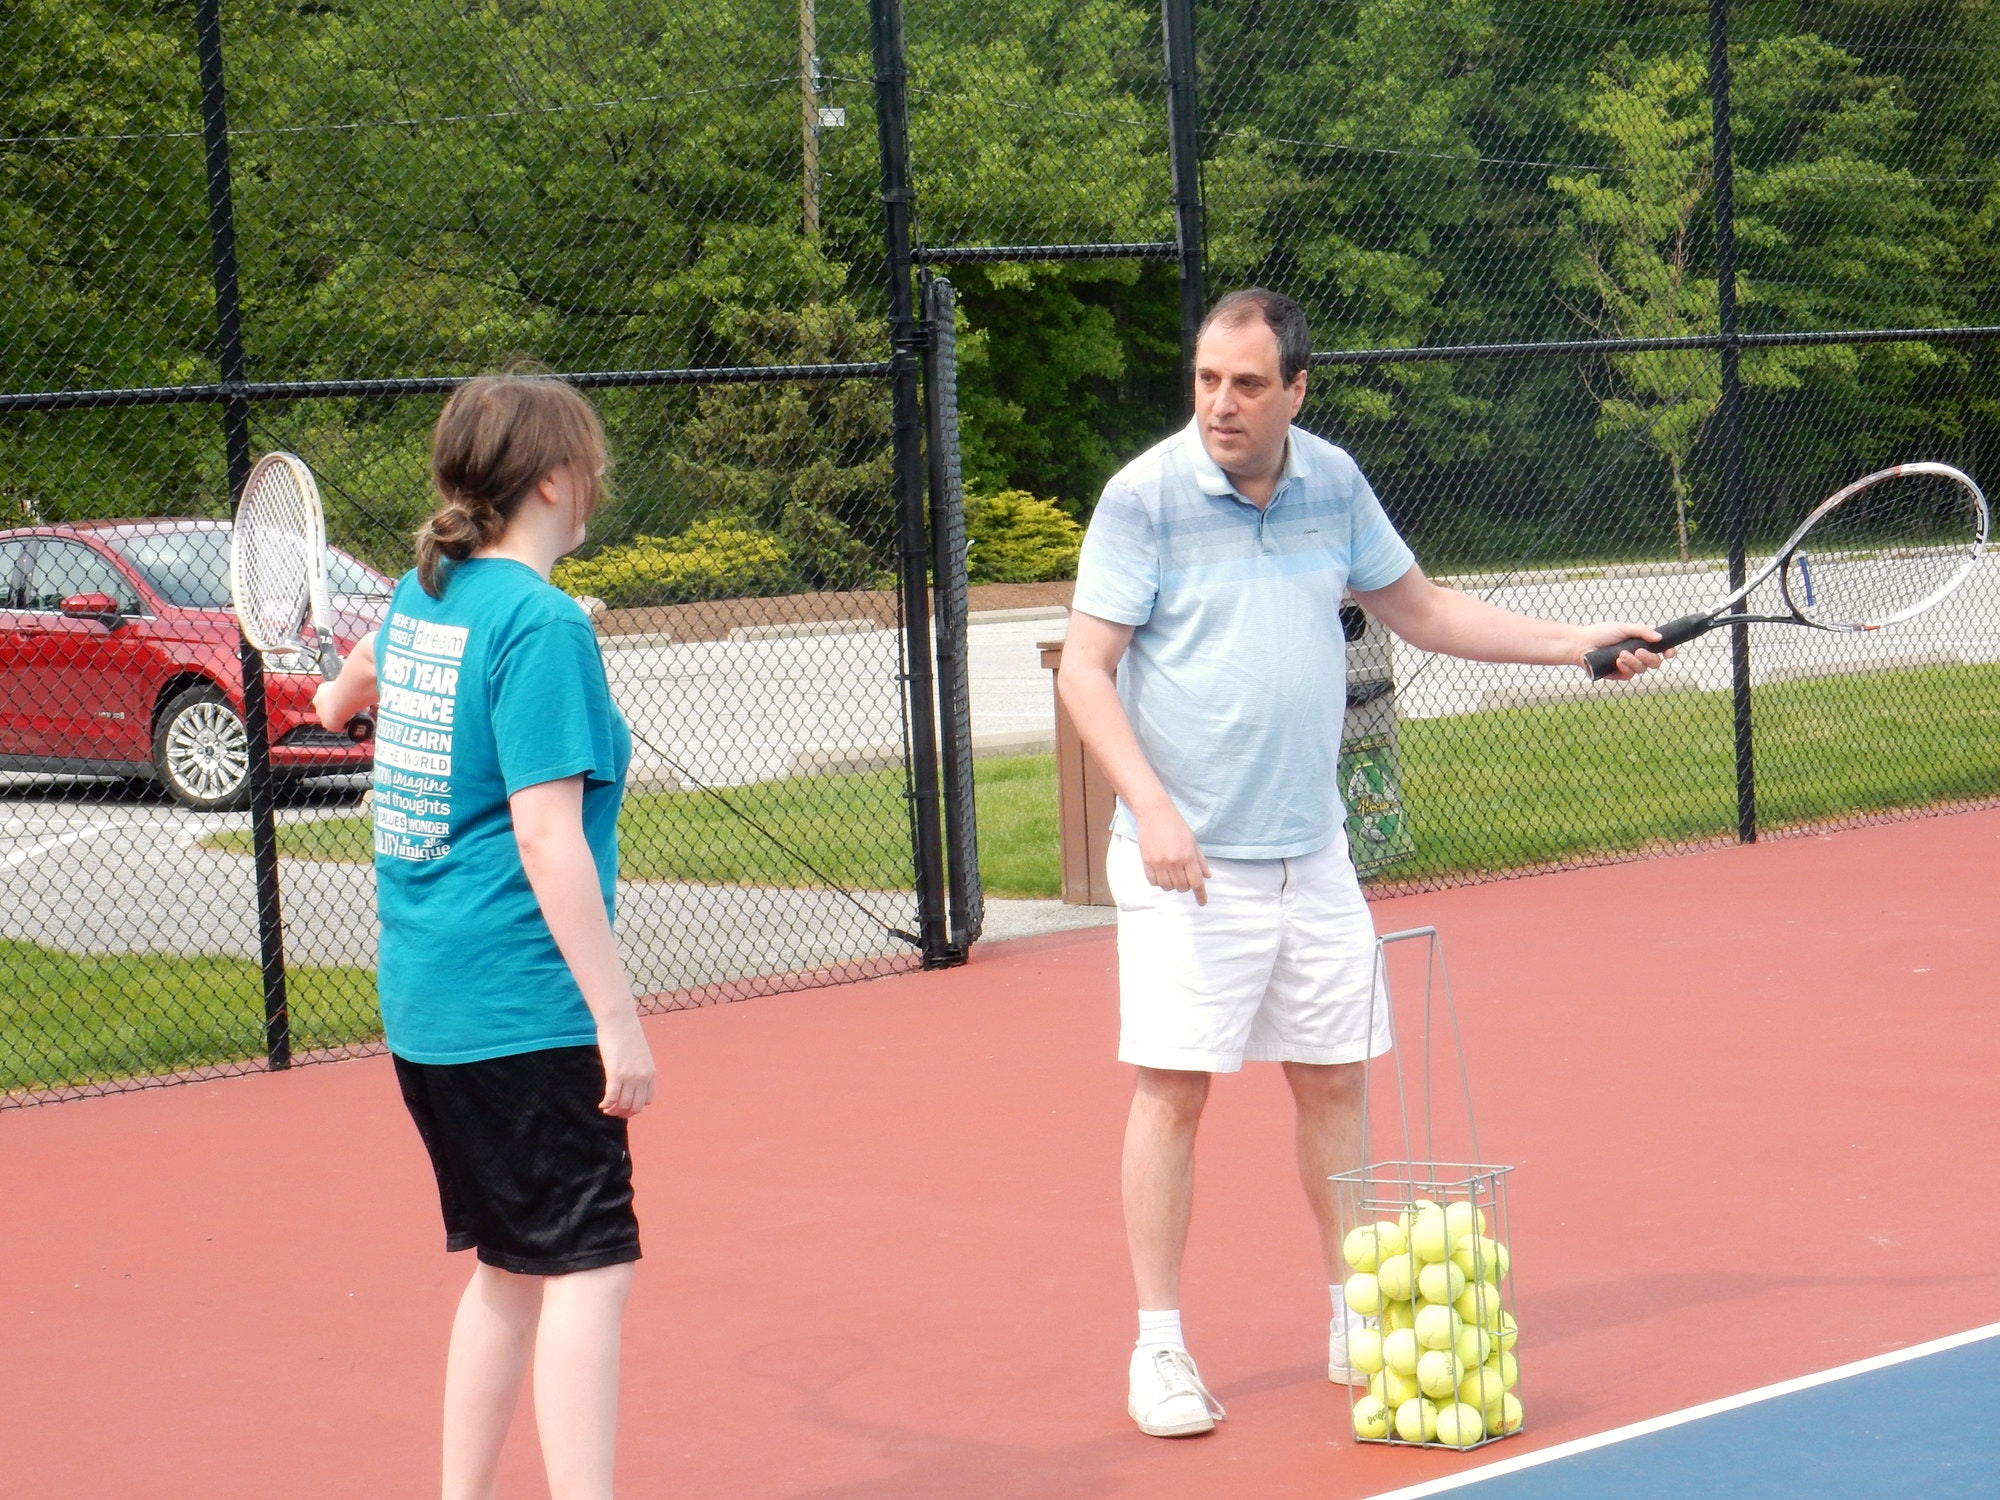 Marty G. teaches tennis lessons in North Olmsted, OH